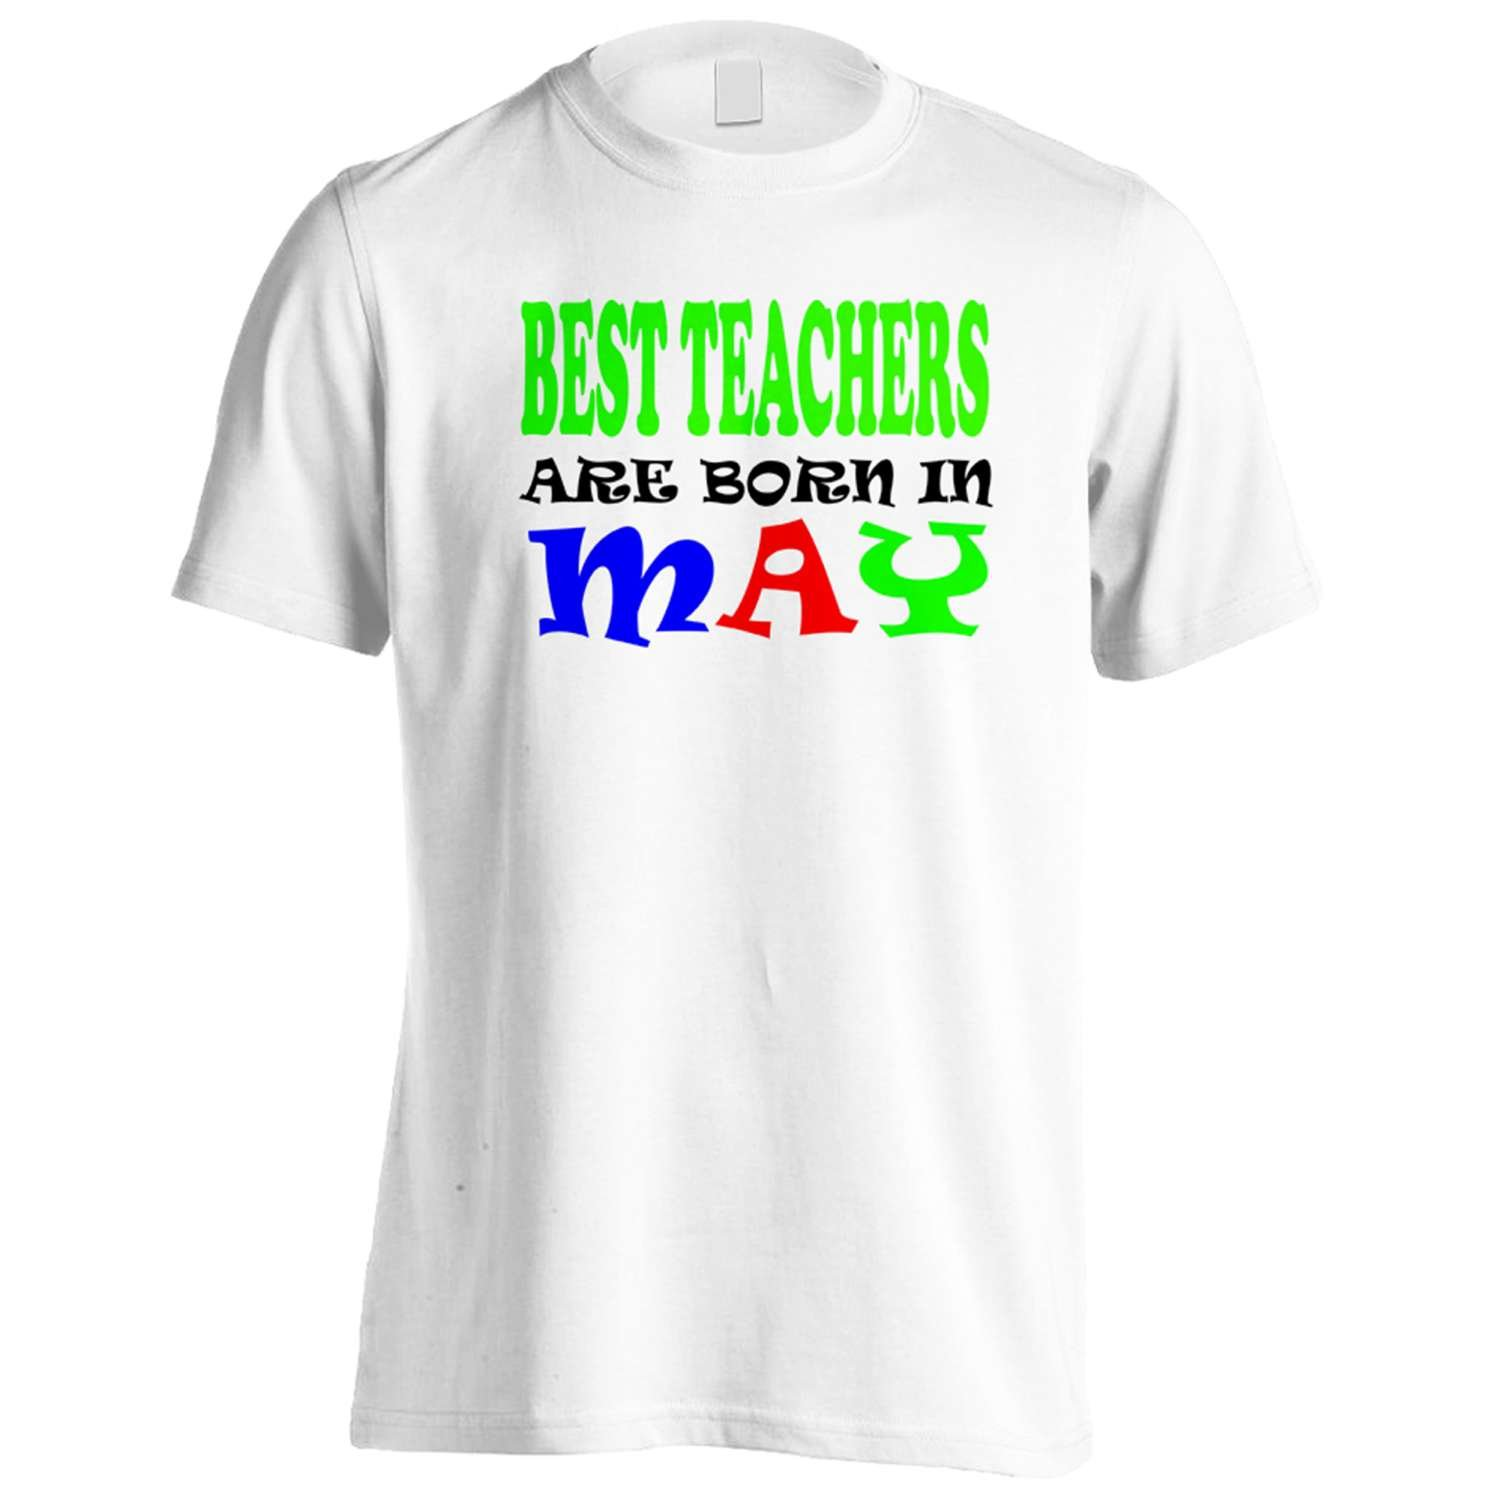 BEST TEACHERS ARE BORN IN MAY FUNNY Men's T-Shirt Tee v59m